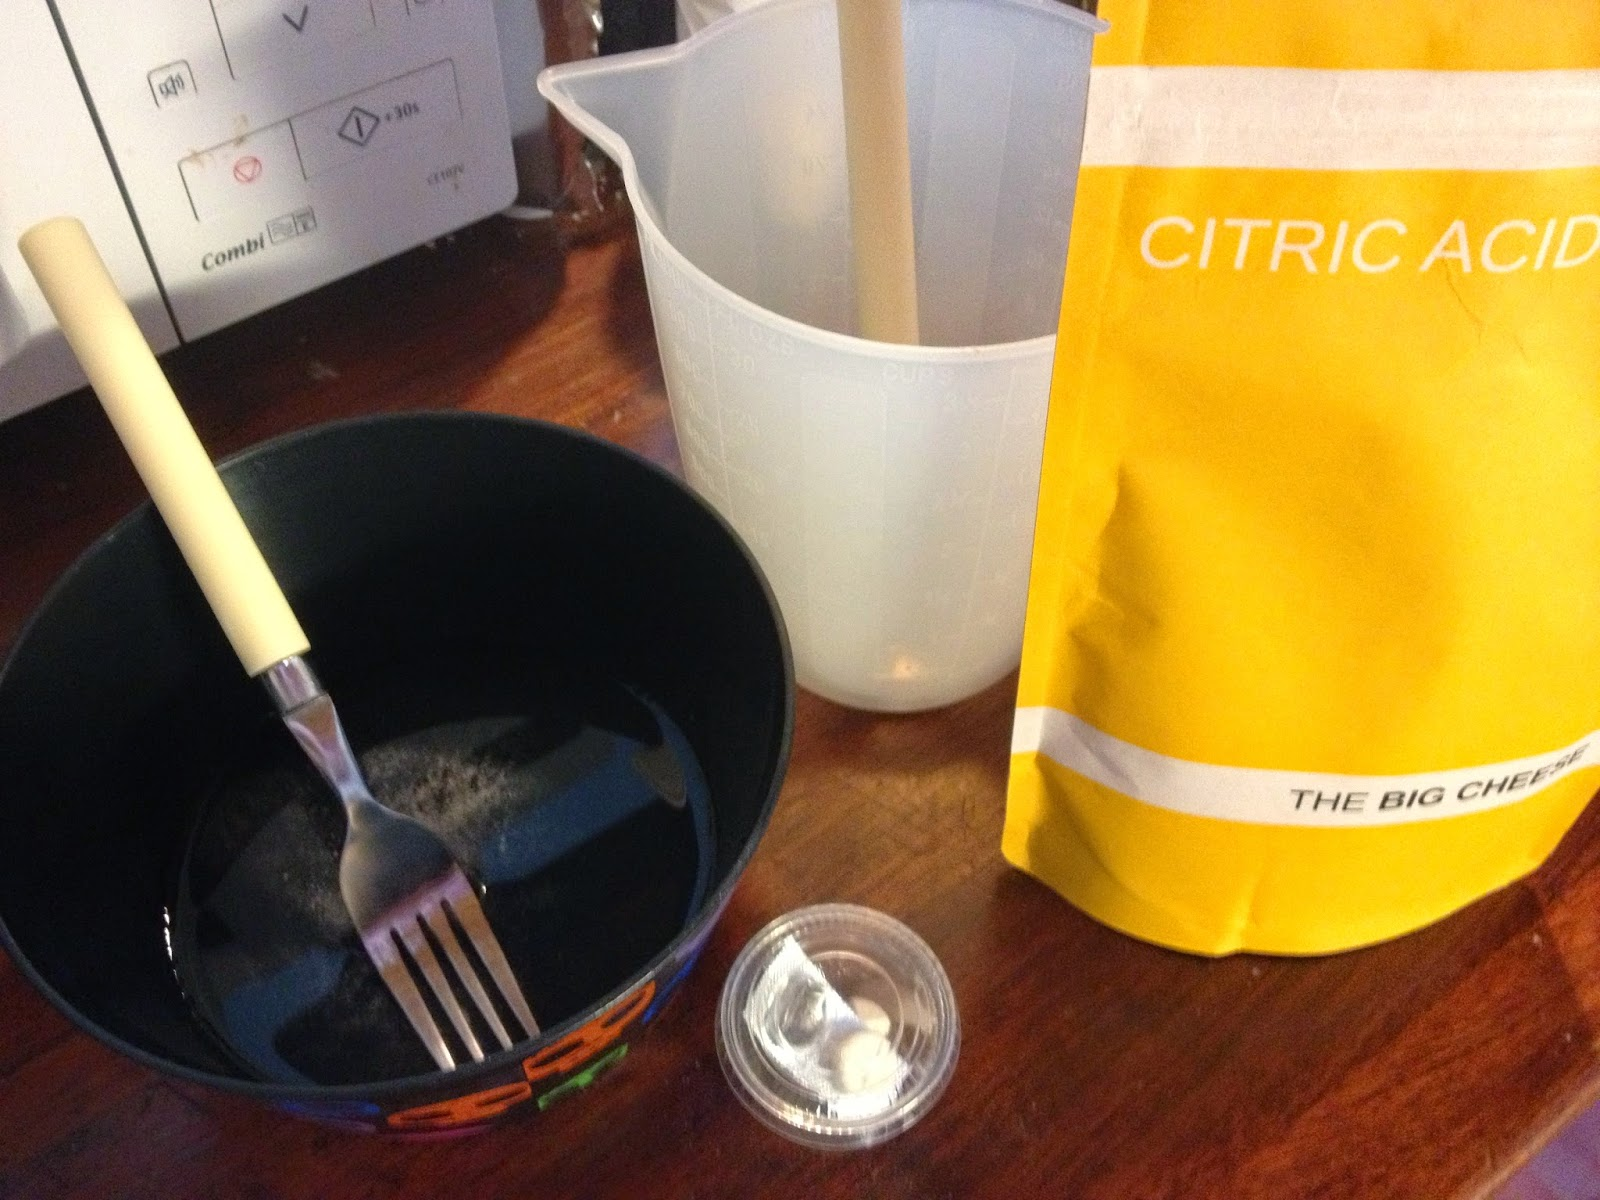 rennet and citric acid solutions